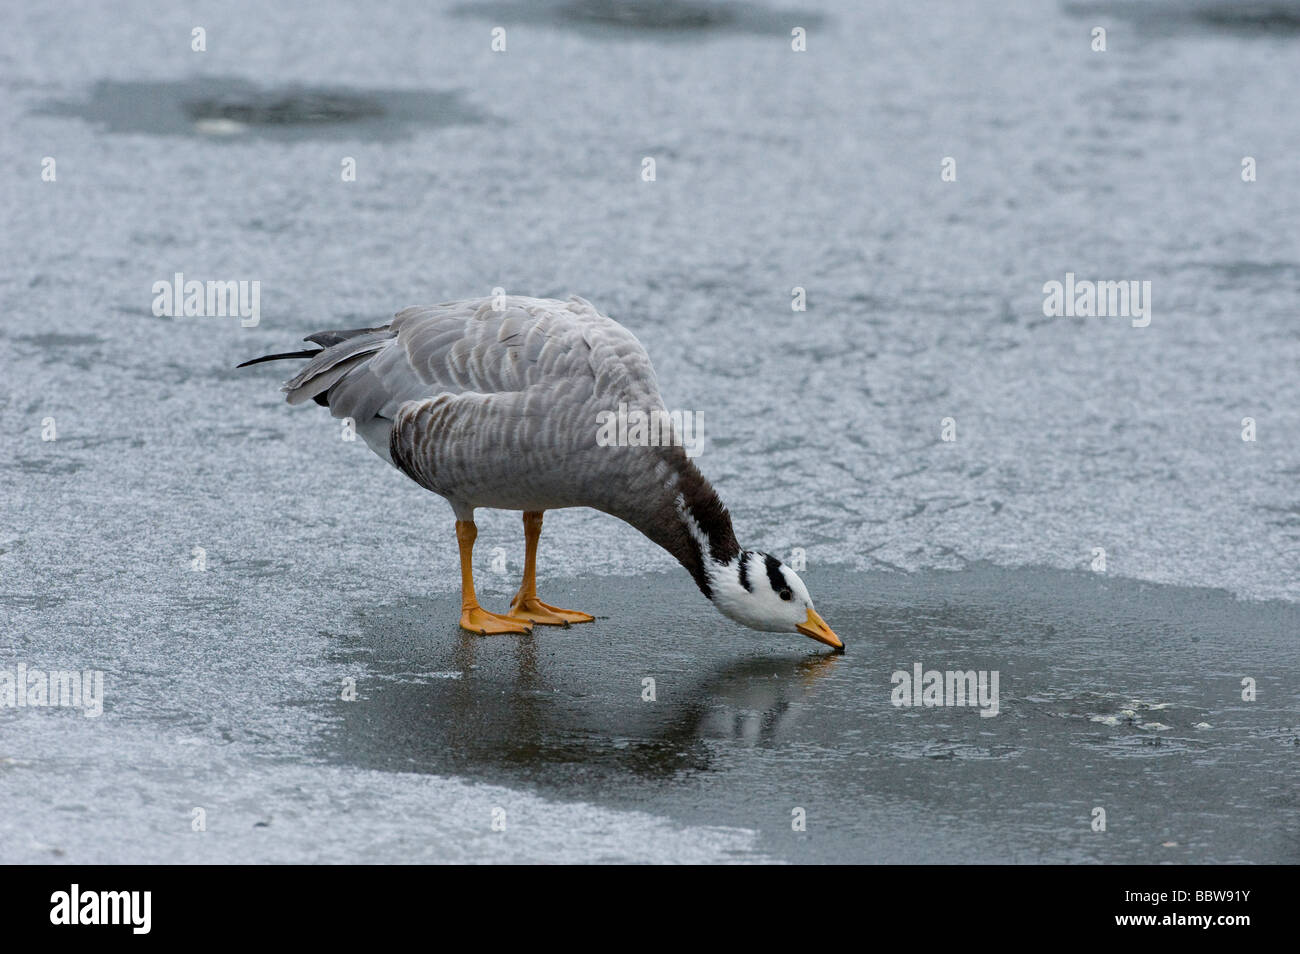 Bar headeed goose Anser indicus attempts to drink from iced pond - Stock Image